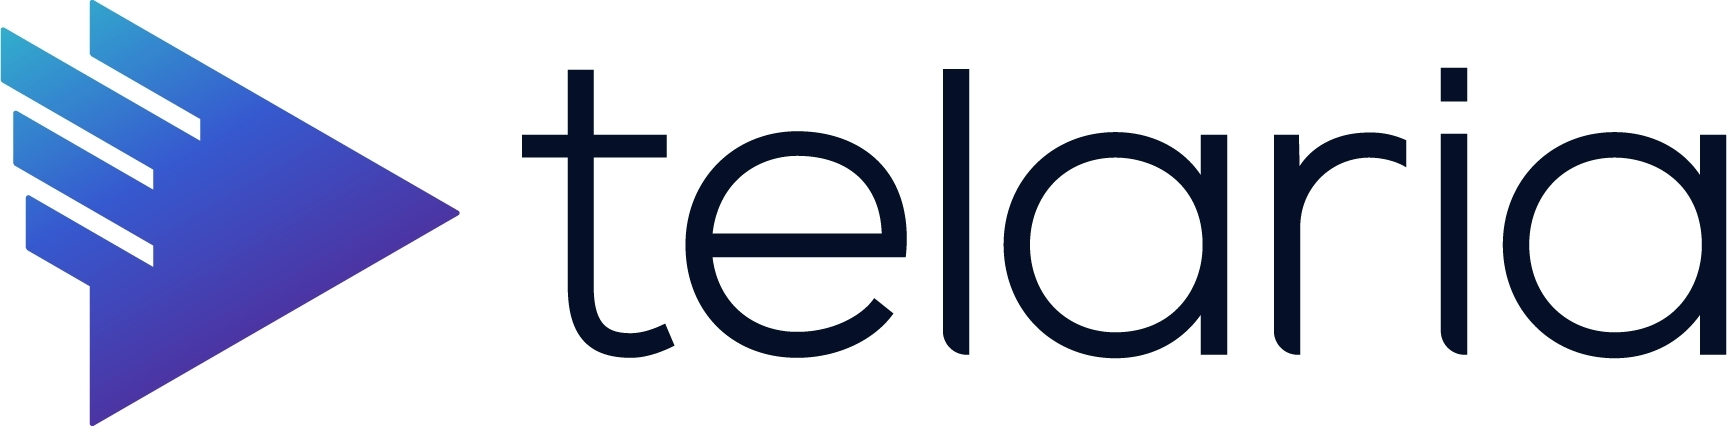 Image result for telaria logo